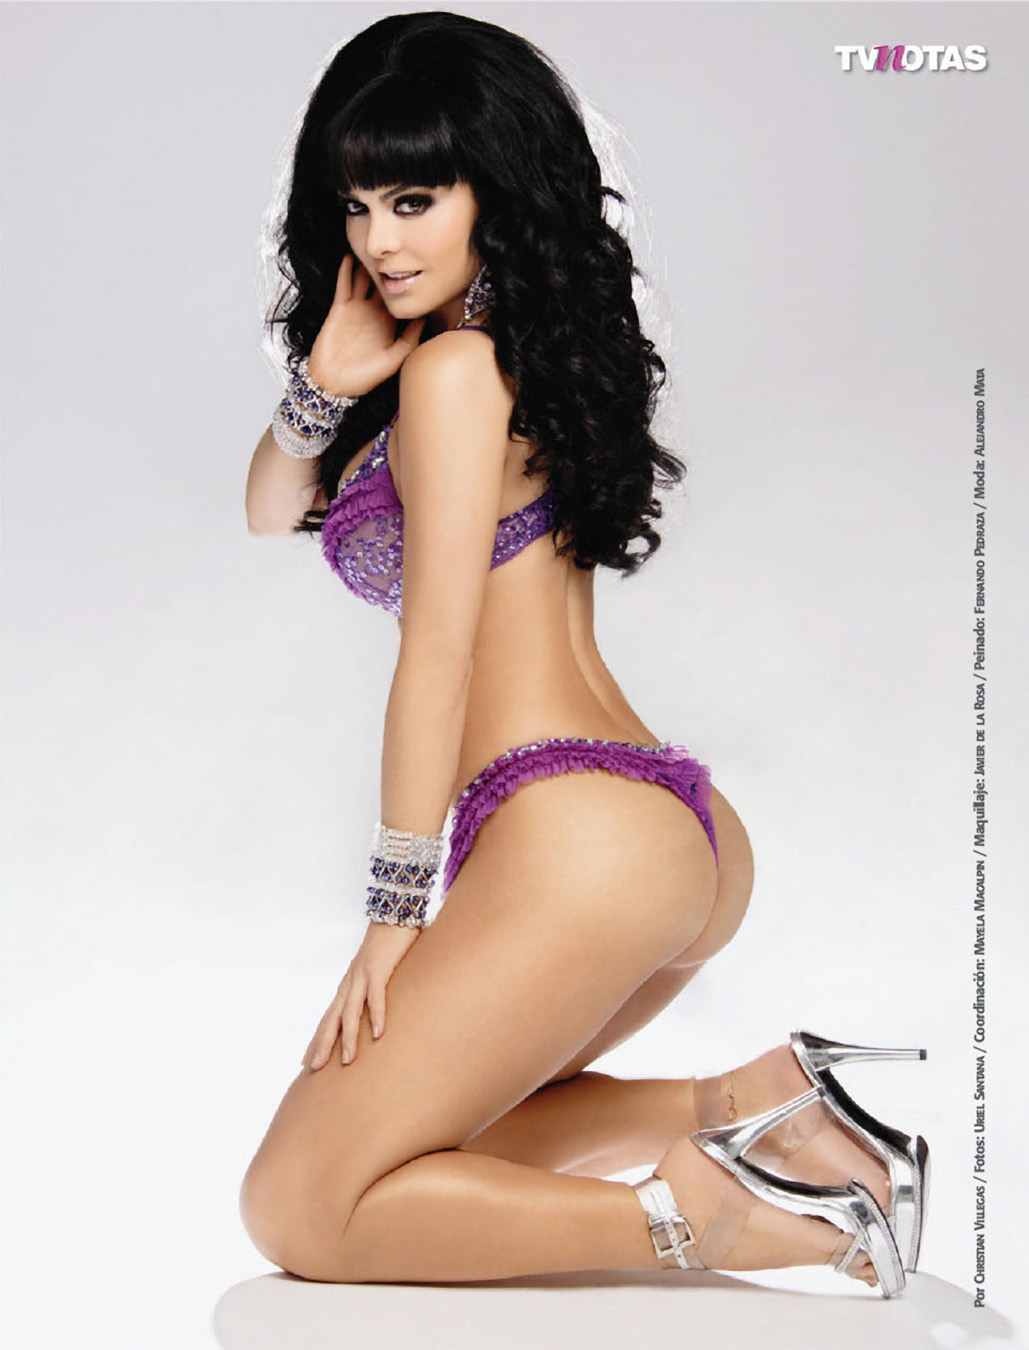 Maribel Guardia Mexicana desnuda